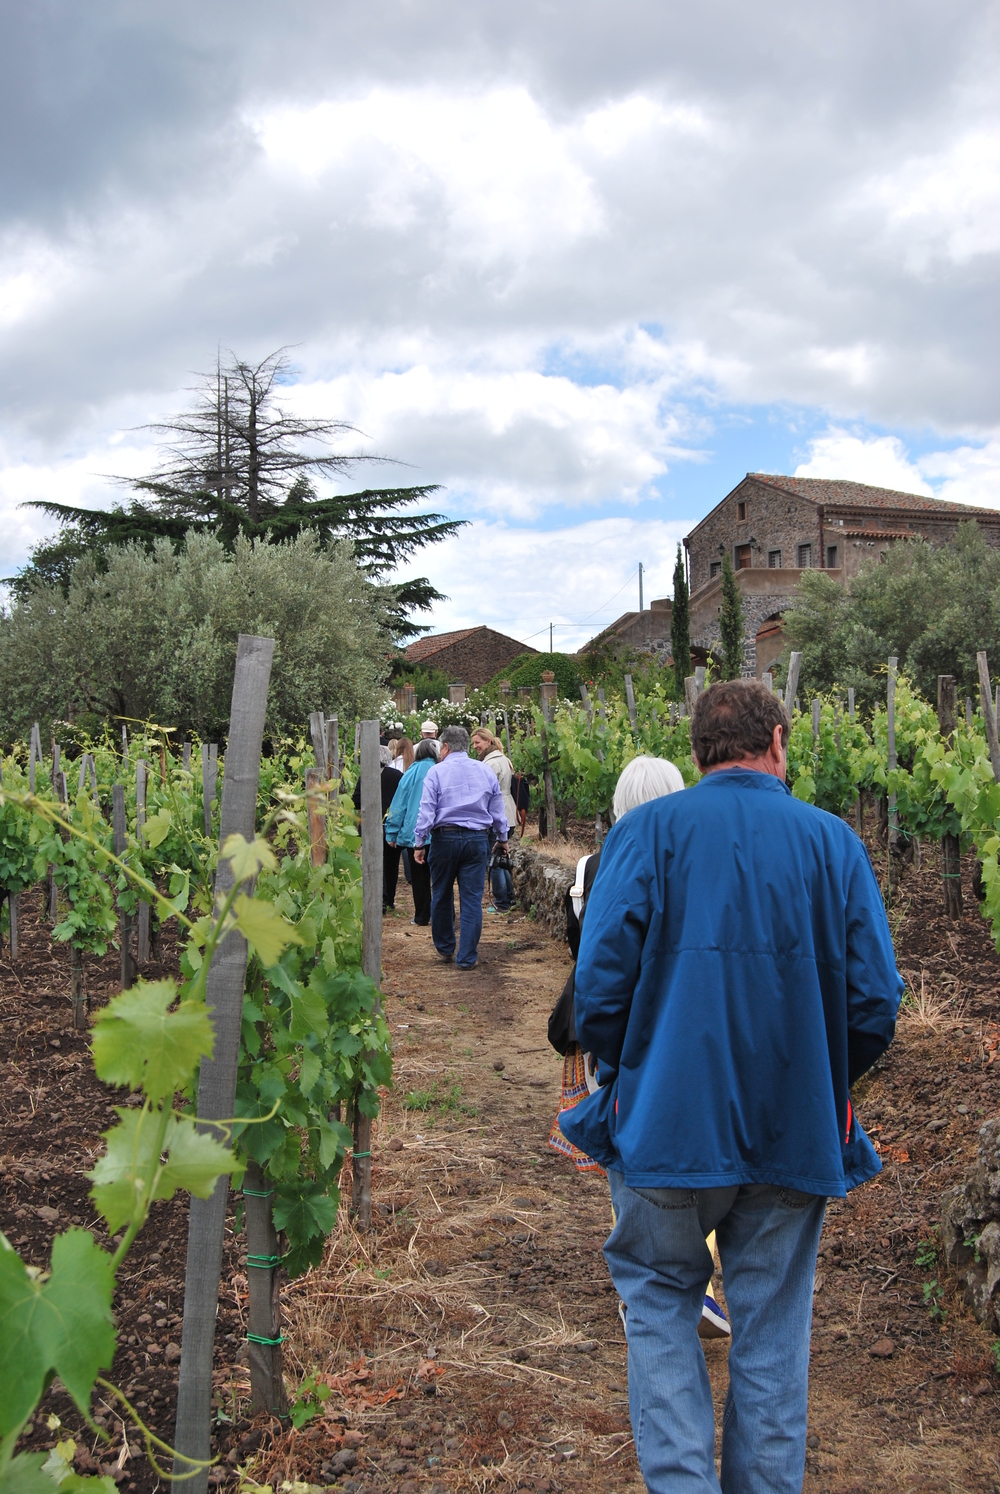 Visit to vineyards and cellars with wine tasting